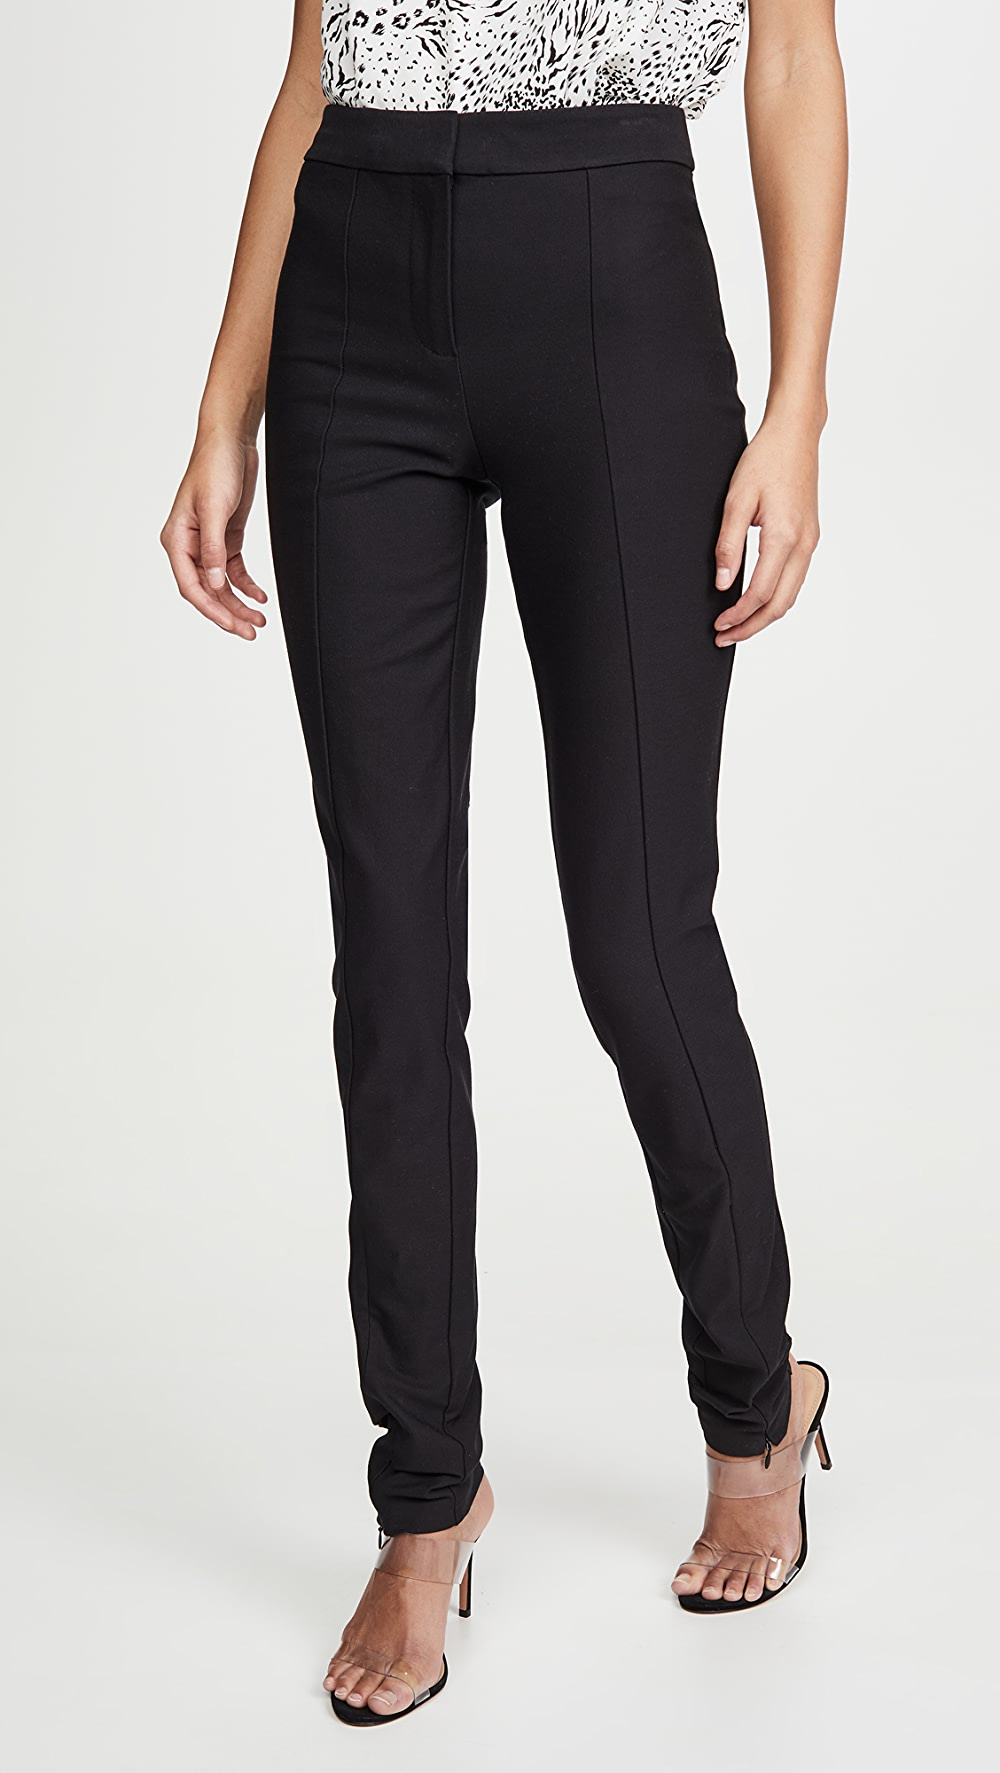 Reasonable Derek Lam 10 Crosby - Ora Slim Trousers With Front Slit Agreeable To Taste